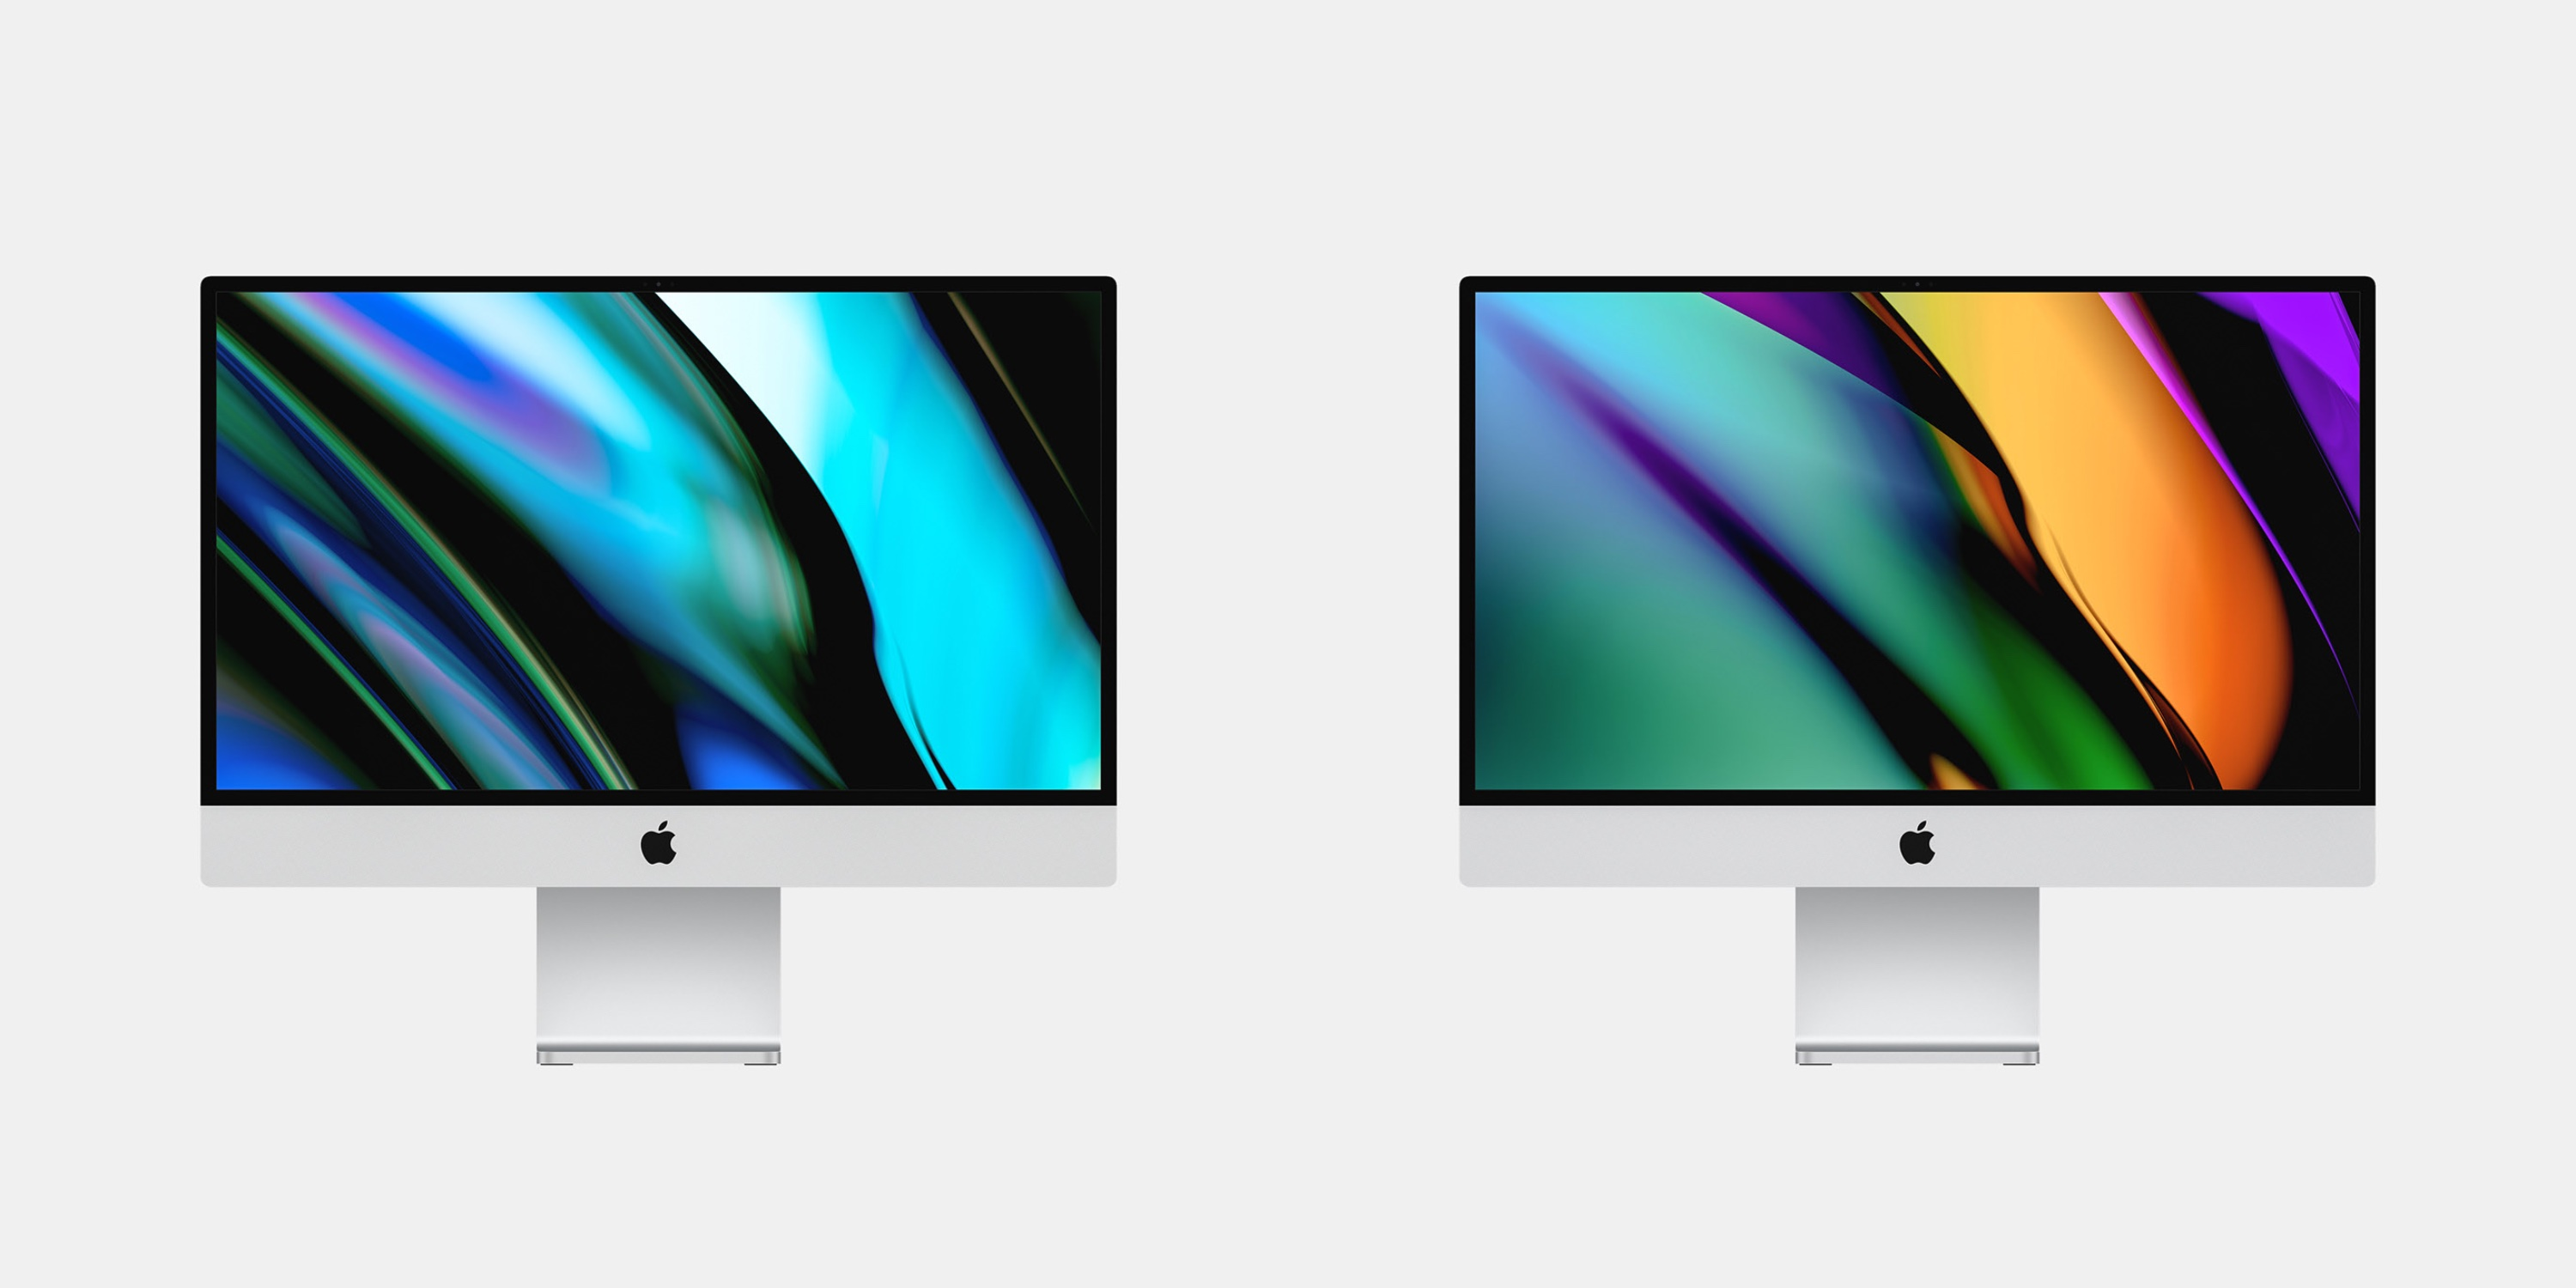 will you buy a 23-inch iMac?